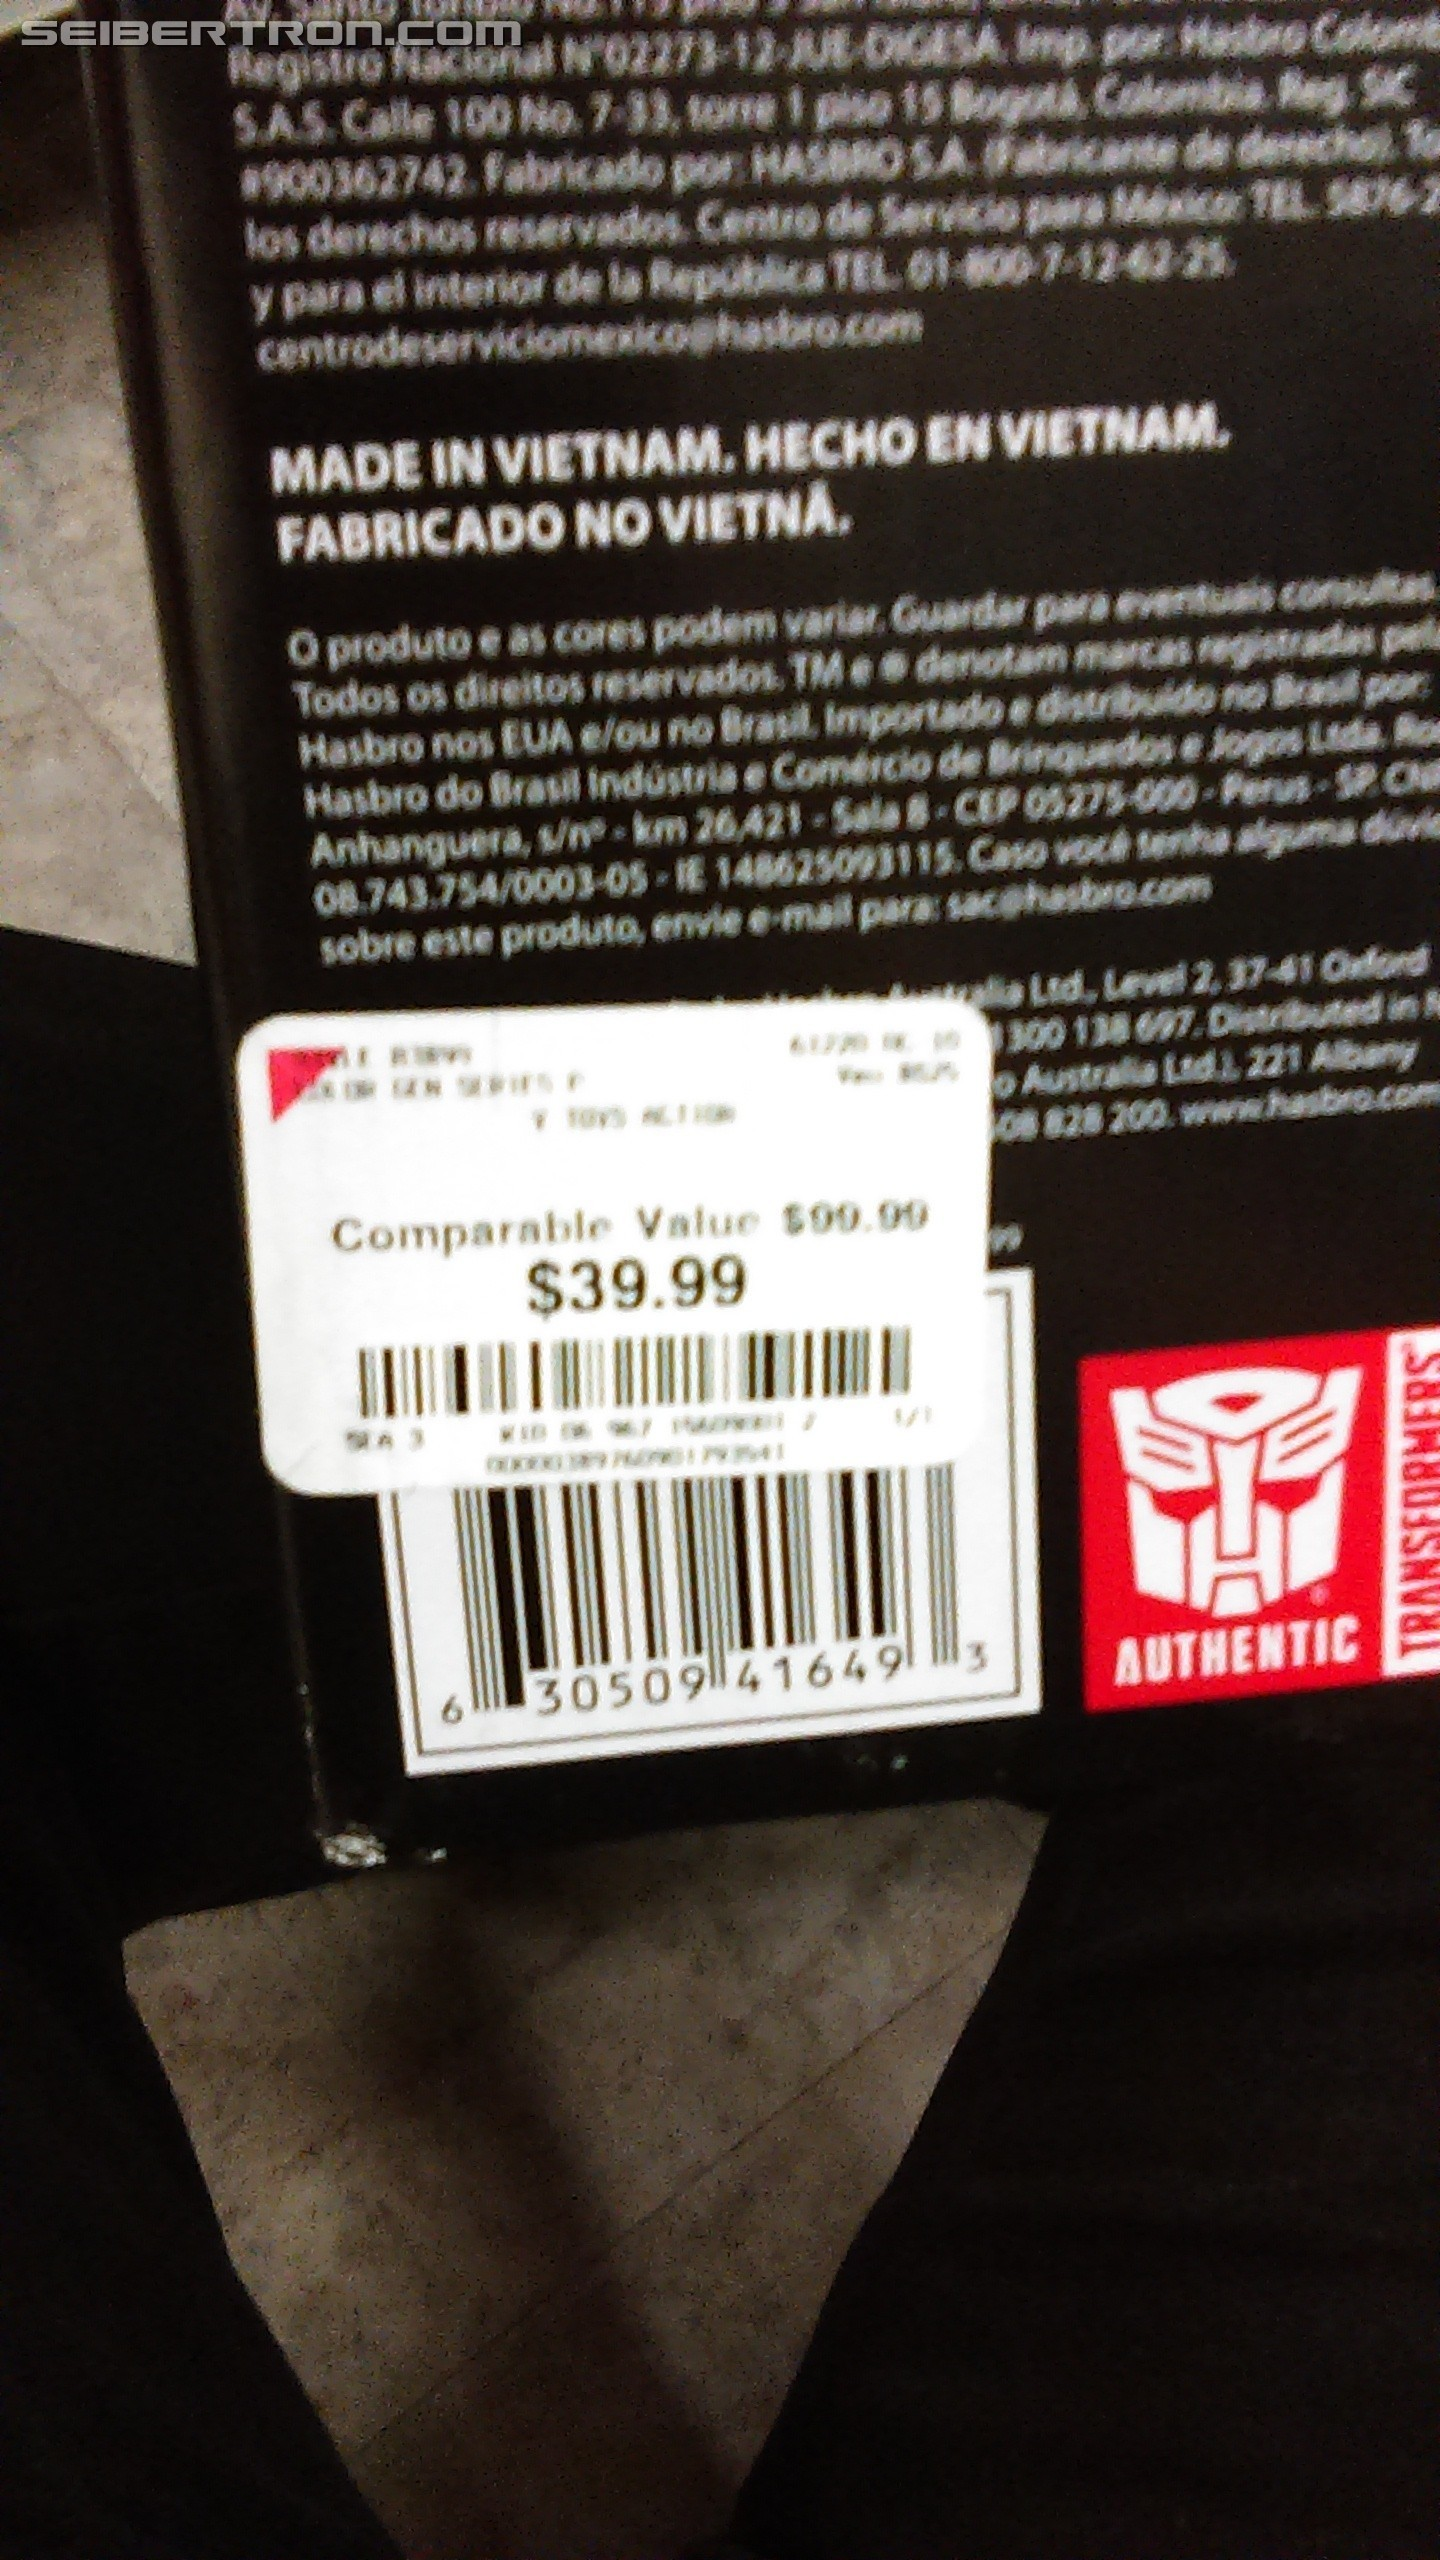 Transformers News: Combiner Wars G2 Bruticus found for $40 at Burlington Coat Factory